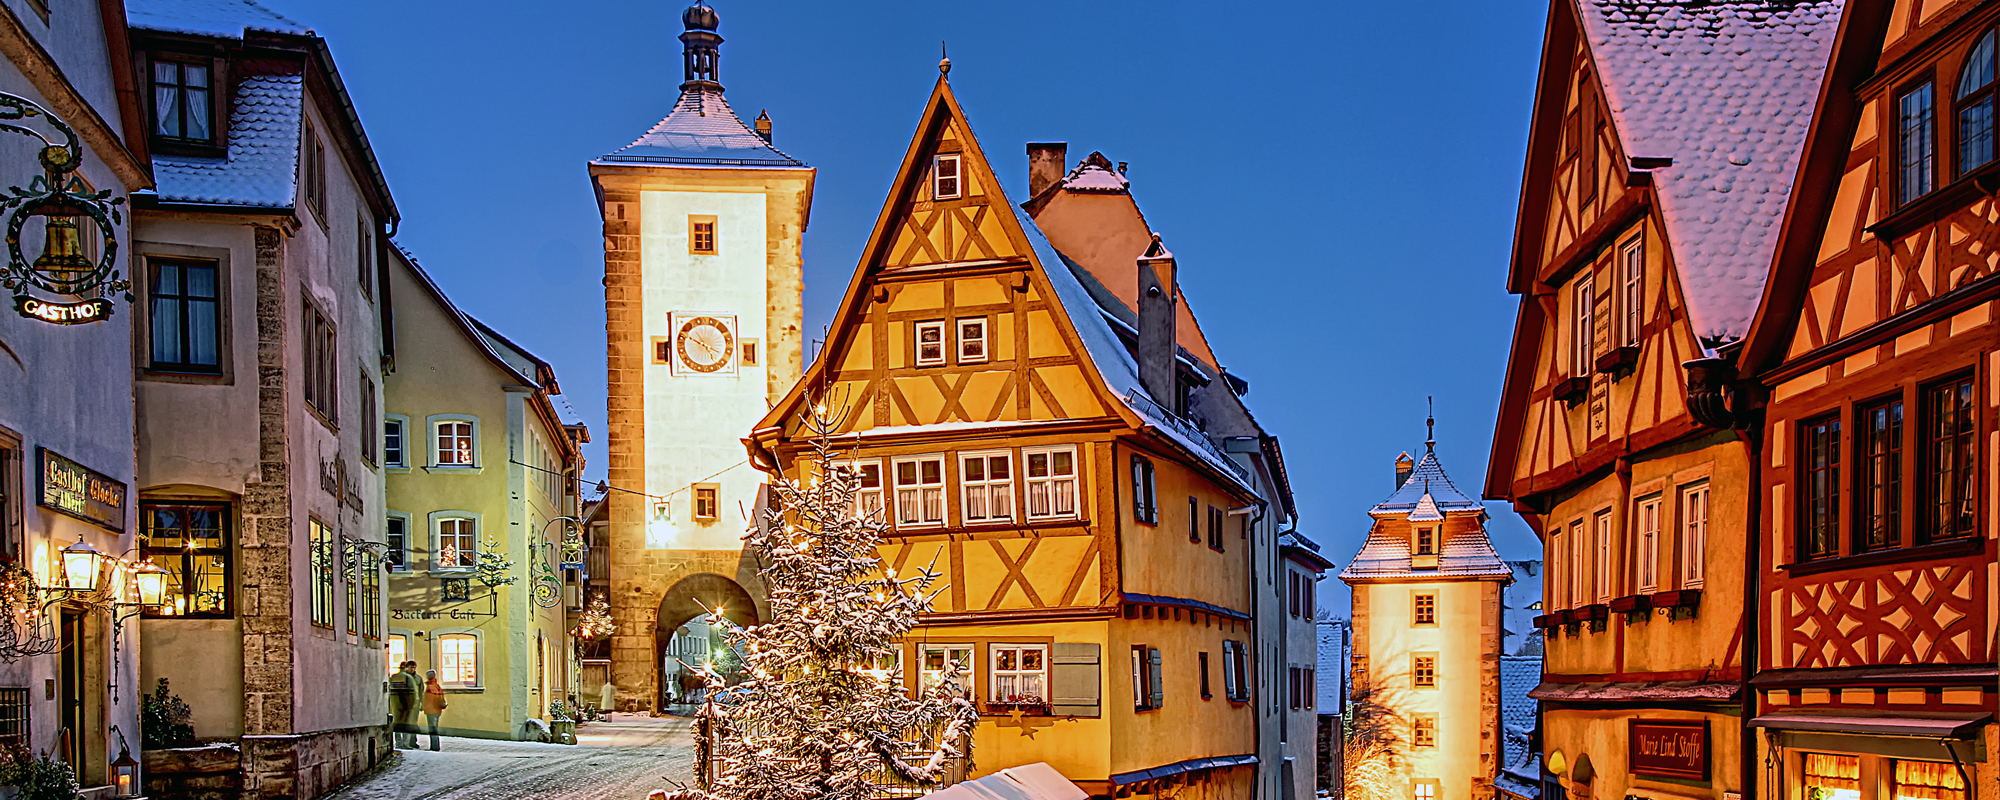 Plönlein in Rothenburg ob der Tauber in winter